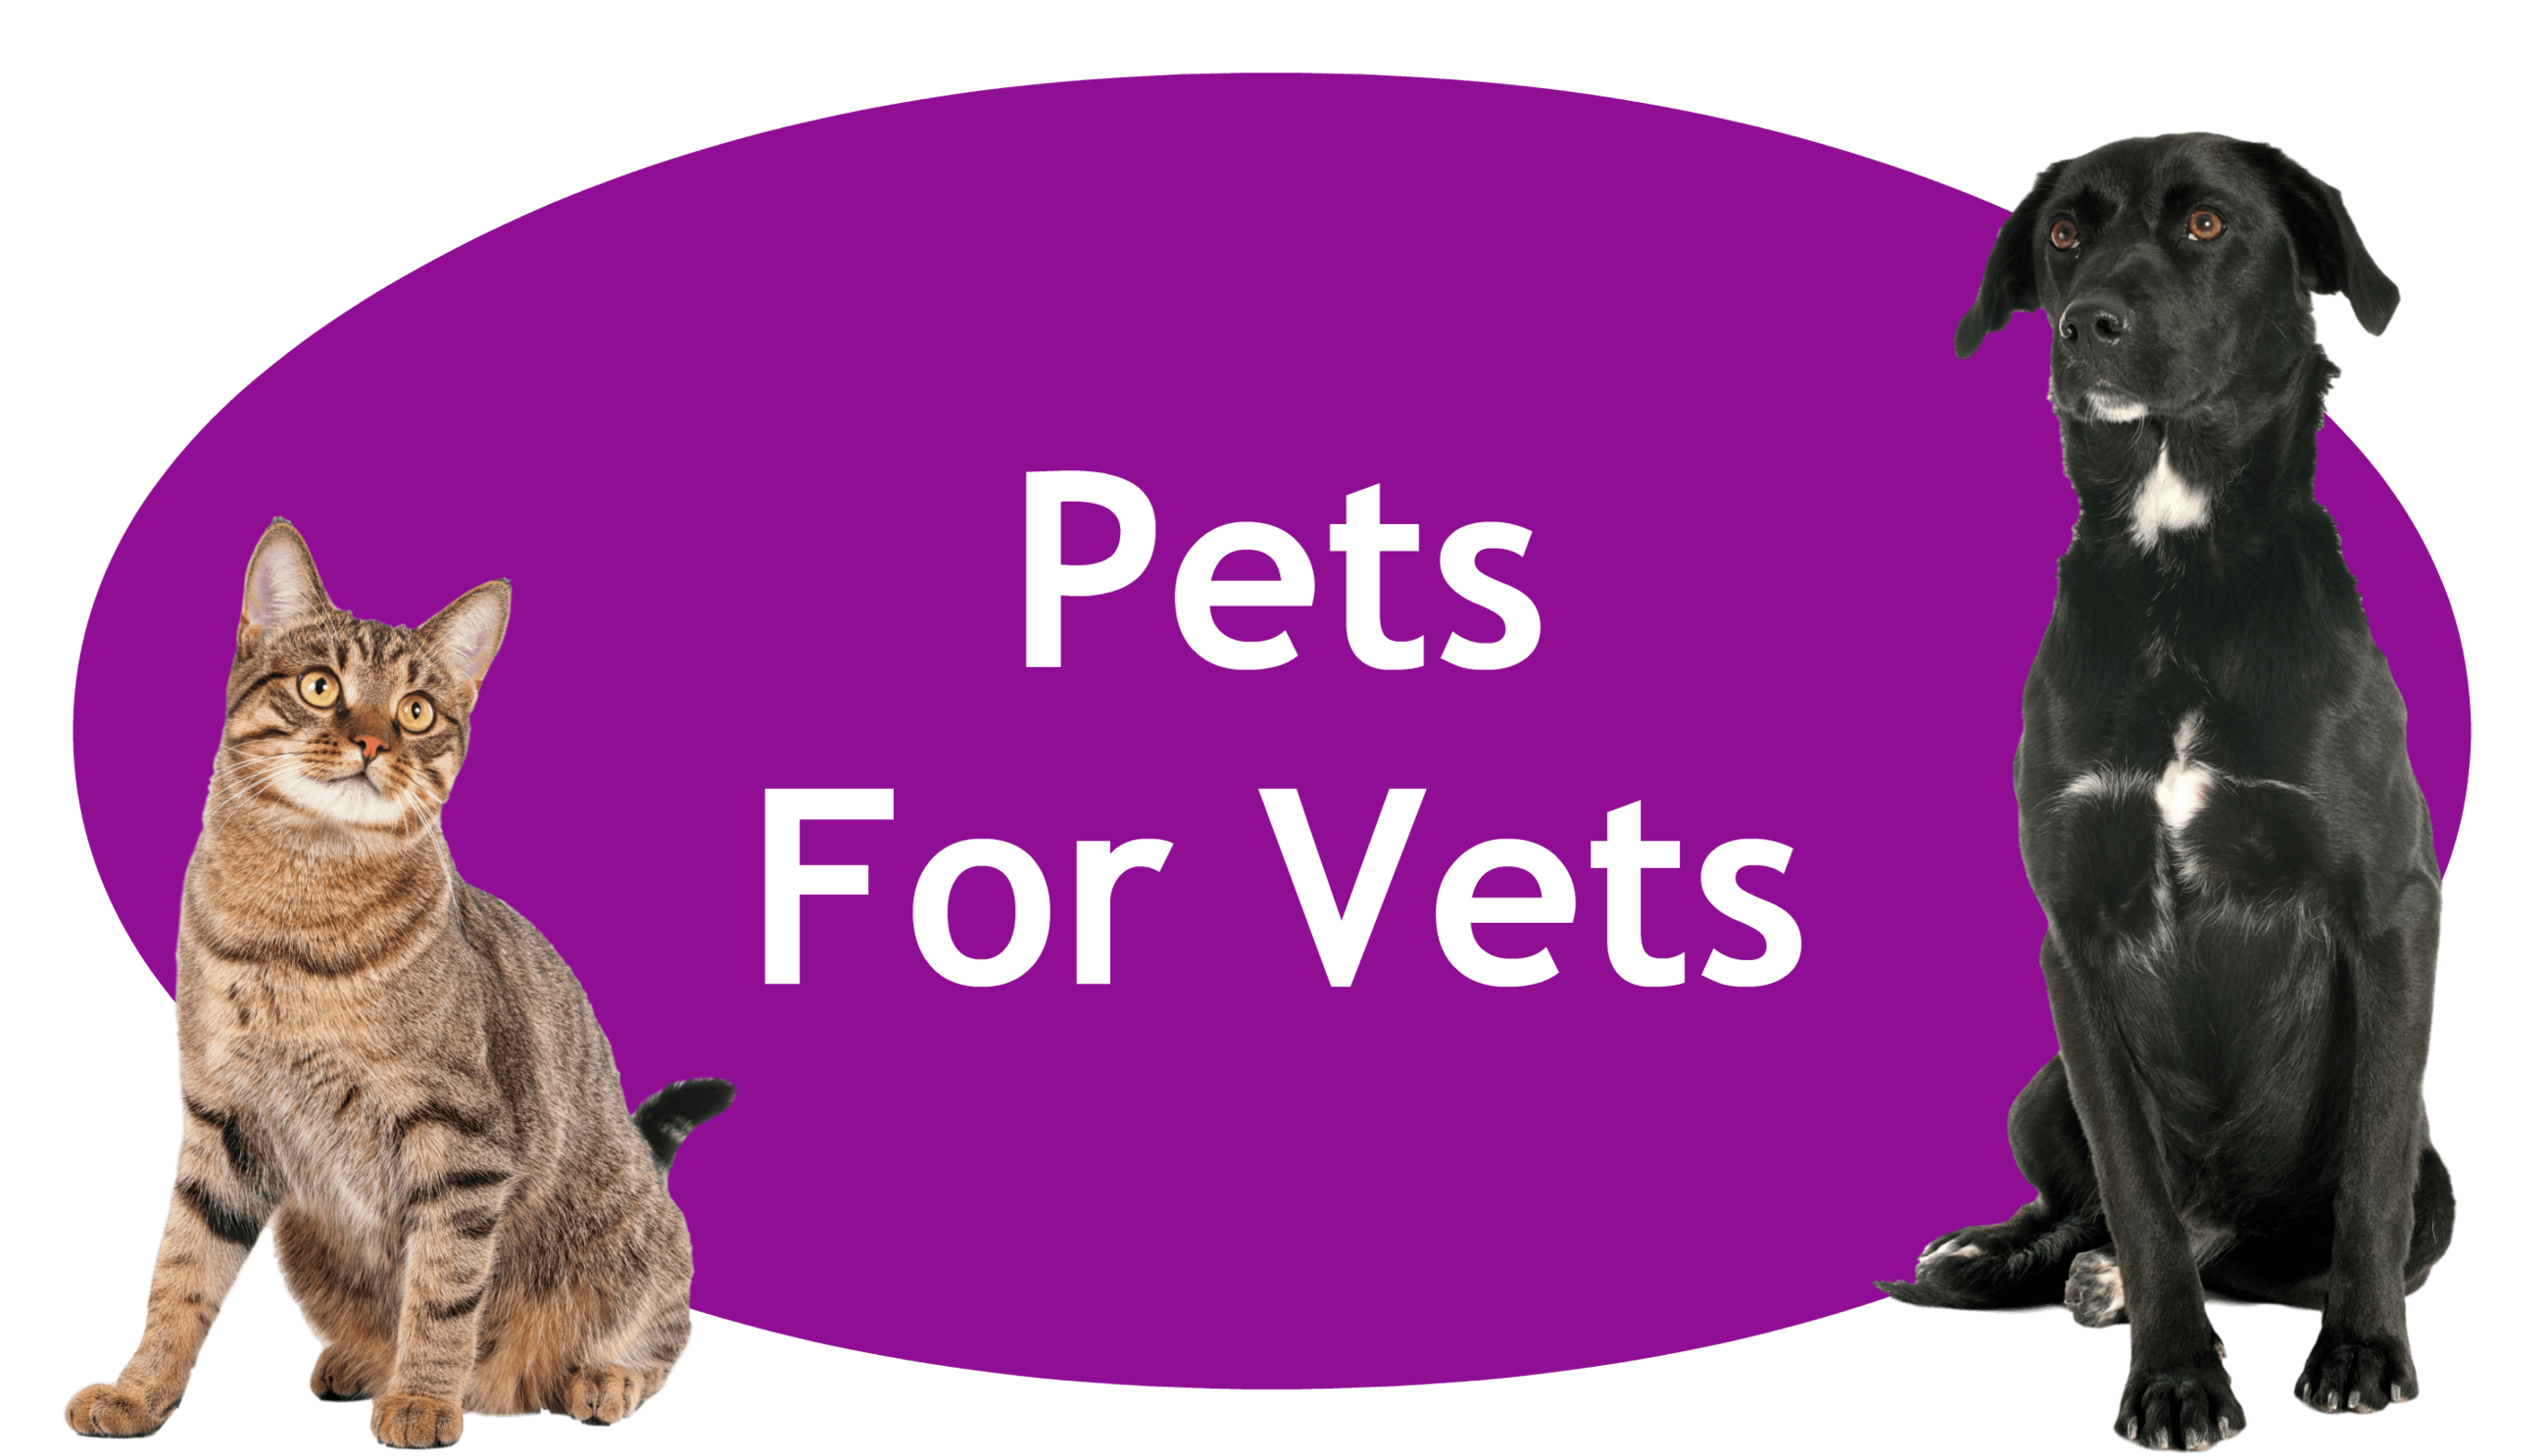 Pets For Vets Page Banner